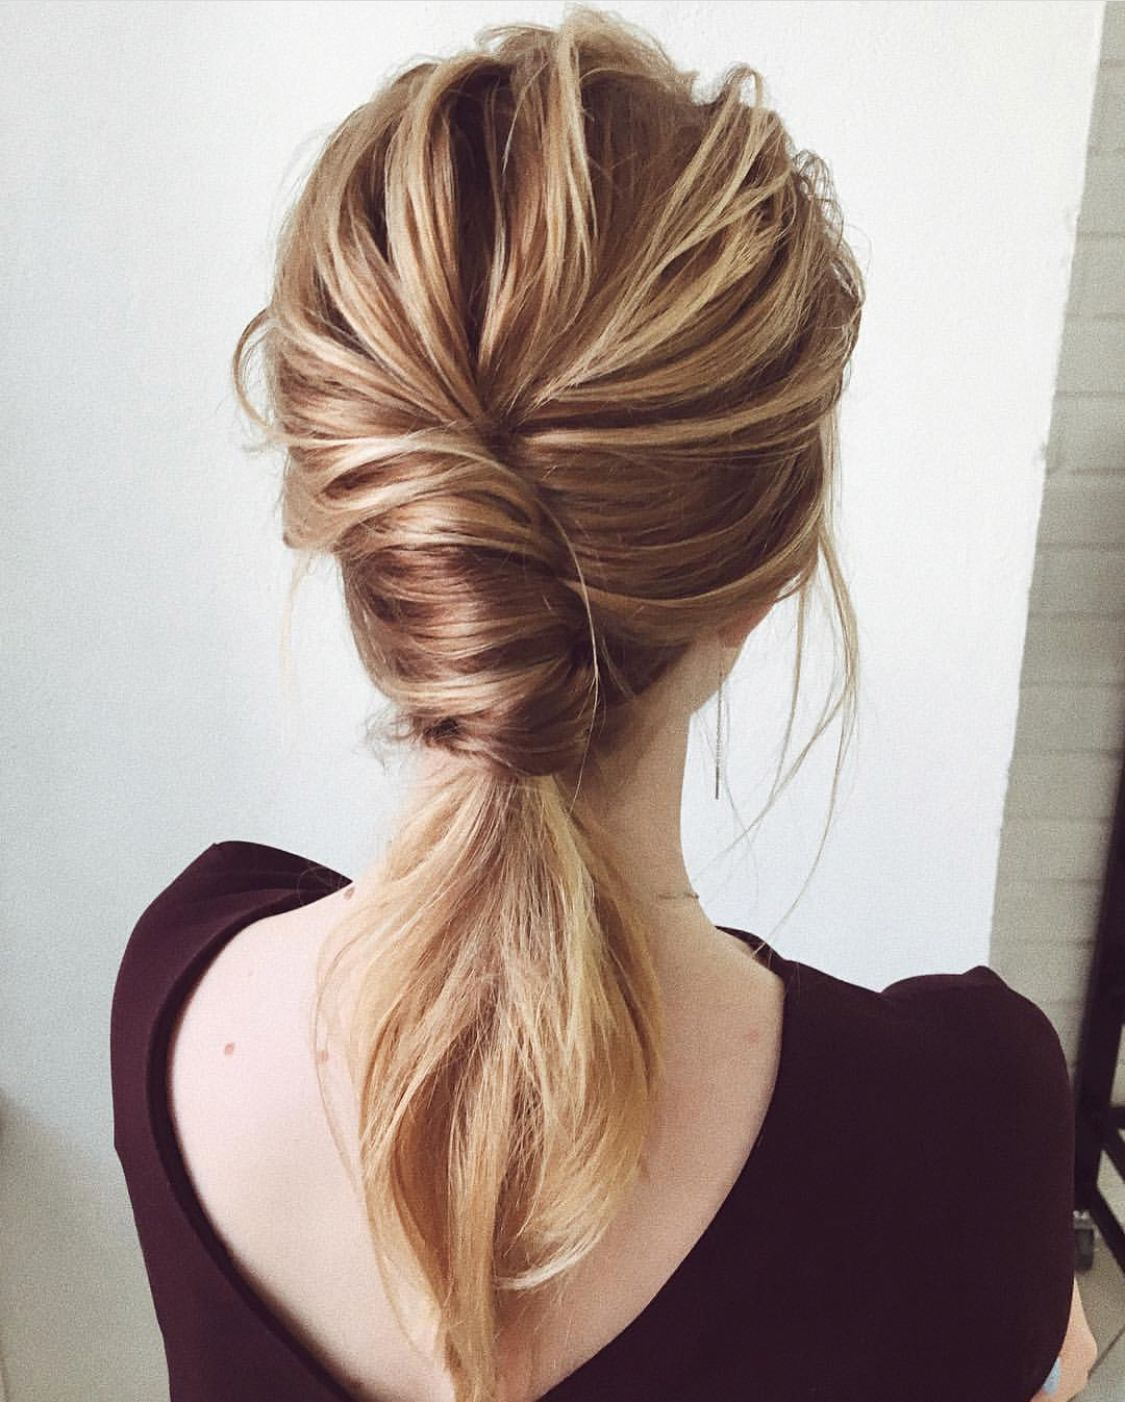 Pin By Audrey Bethards On Bridal Hair Half Up Low Ponytail Hairstyles Side Ponytail Hairstyles Low Ponytail